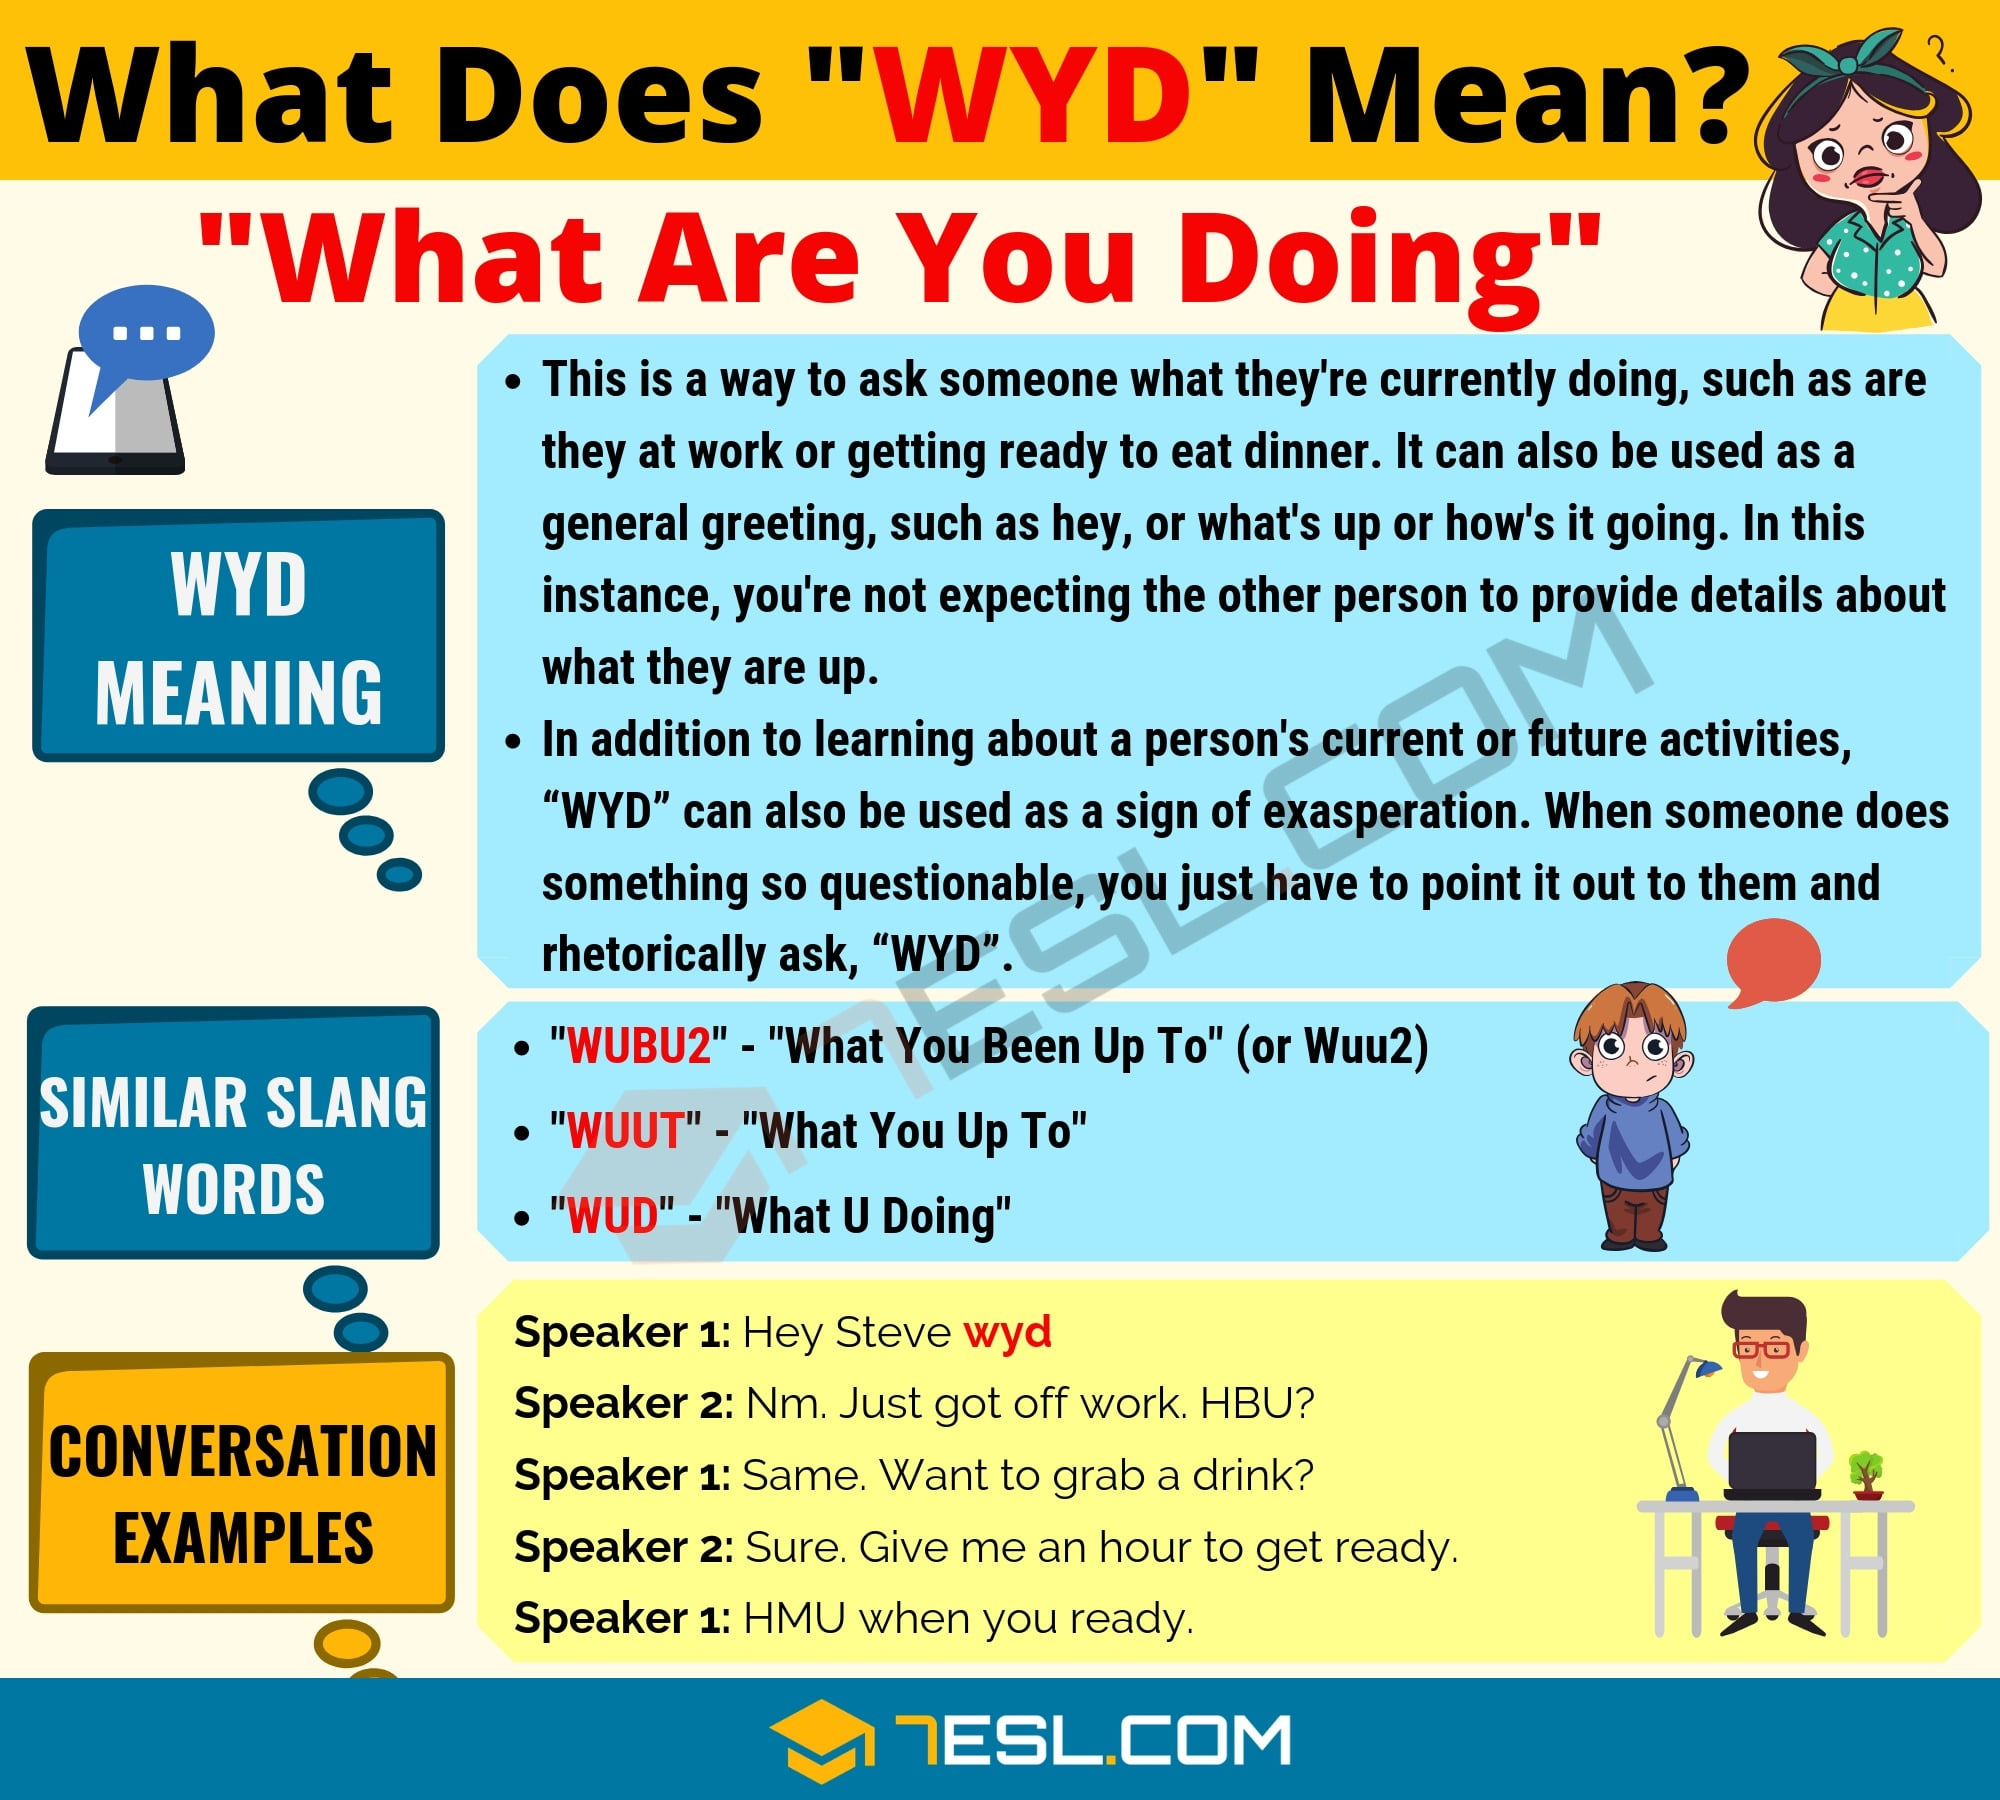 WYD Meaning: What Does WYD Mean? Useful Text Conversations - 7 E S L